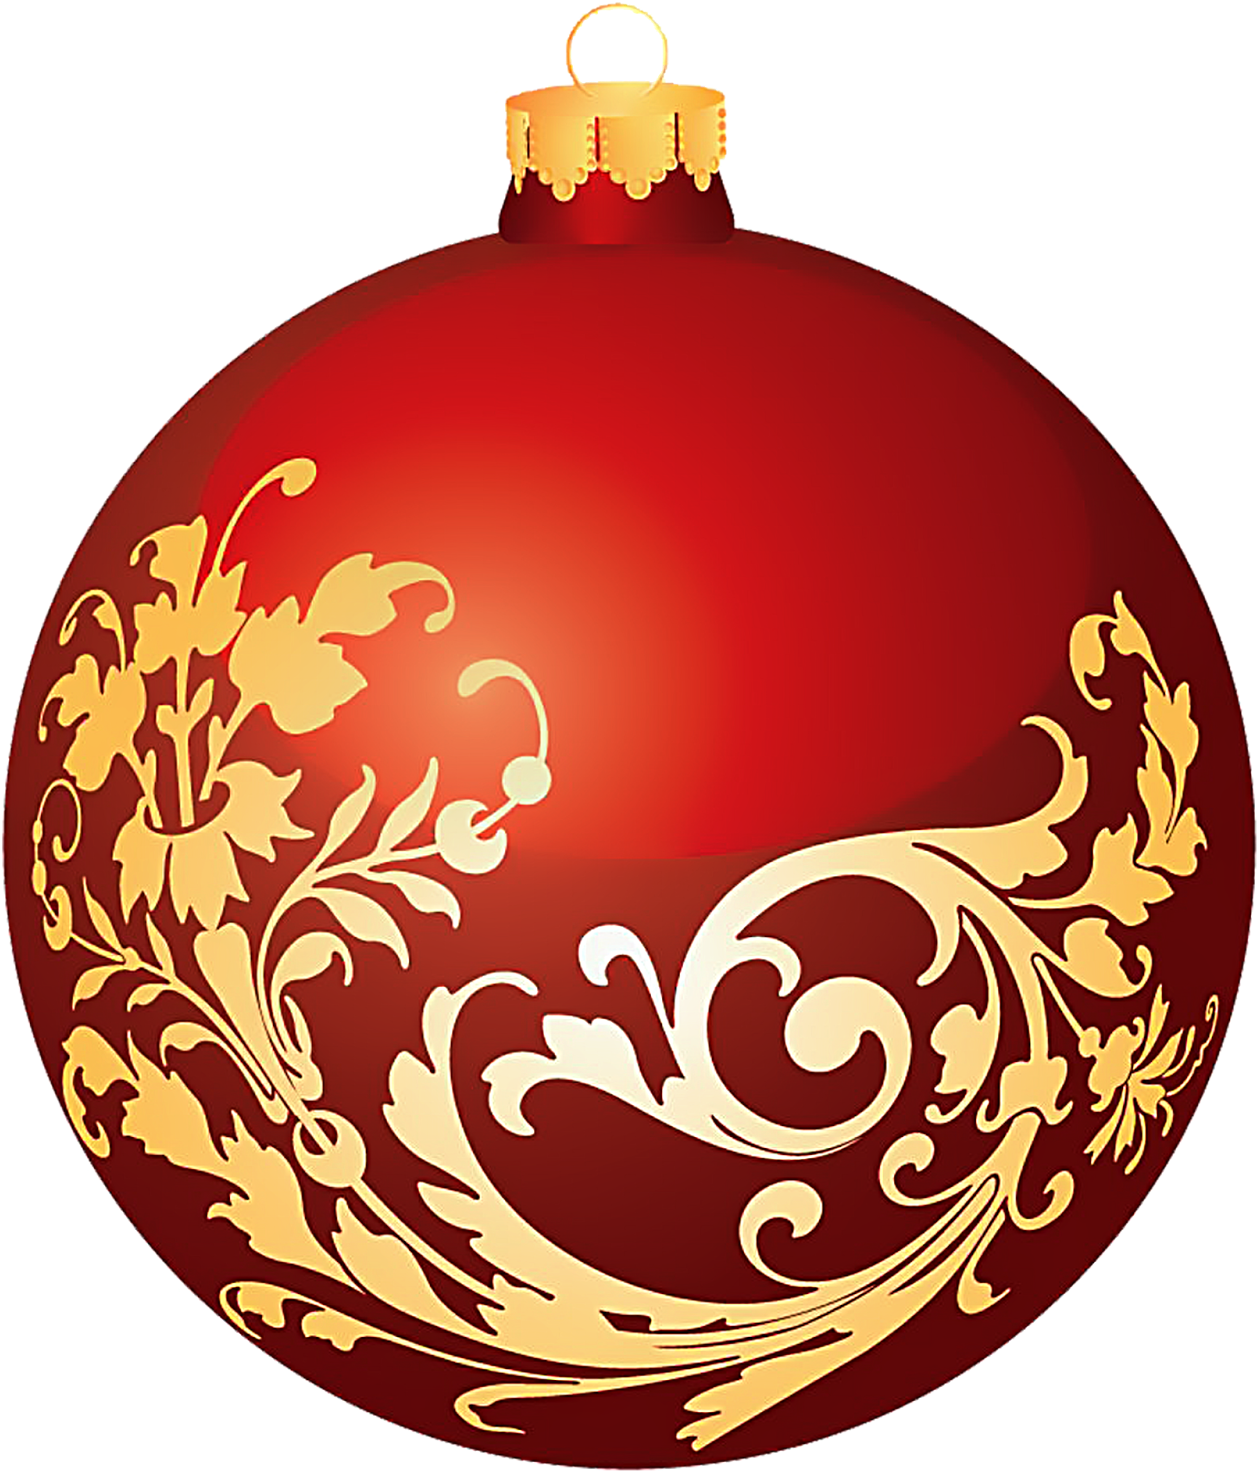 Download Beautiful Christmas Cliparts Free Download Clip Art Christmas Bauble Vector Cdr Png Image With No Background Pngkey Com